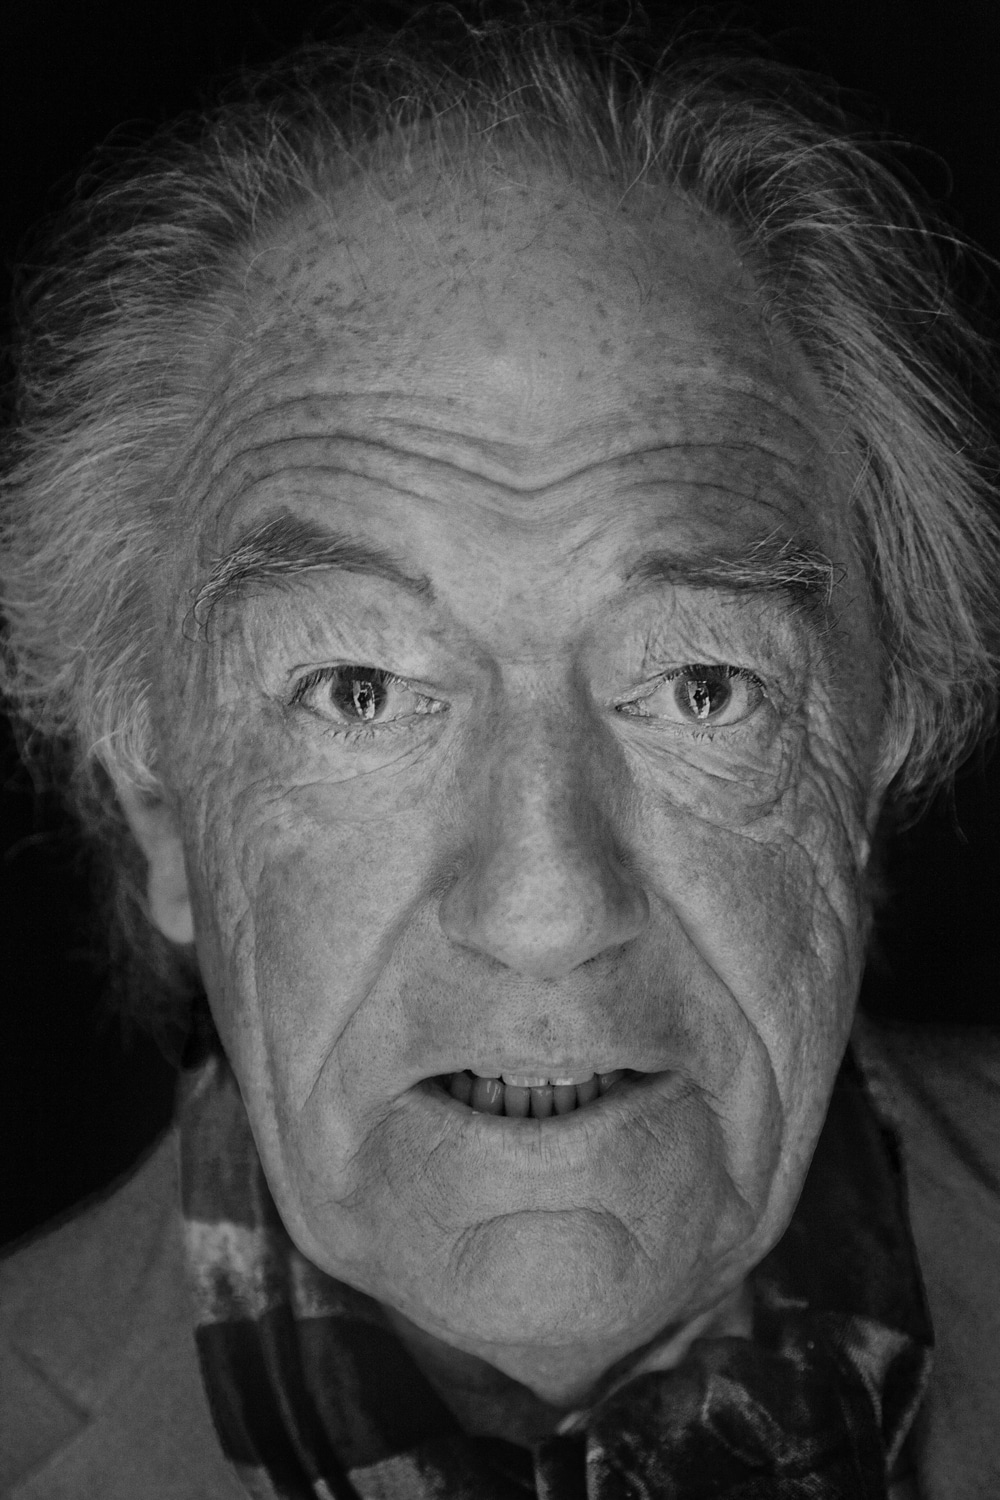 MICHAEL GAMBON PHOTOGRAPHED AT THE GATE THEATRE BY BARRY MCCALL FO PHO20GRAPHY